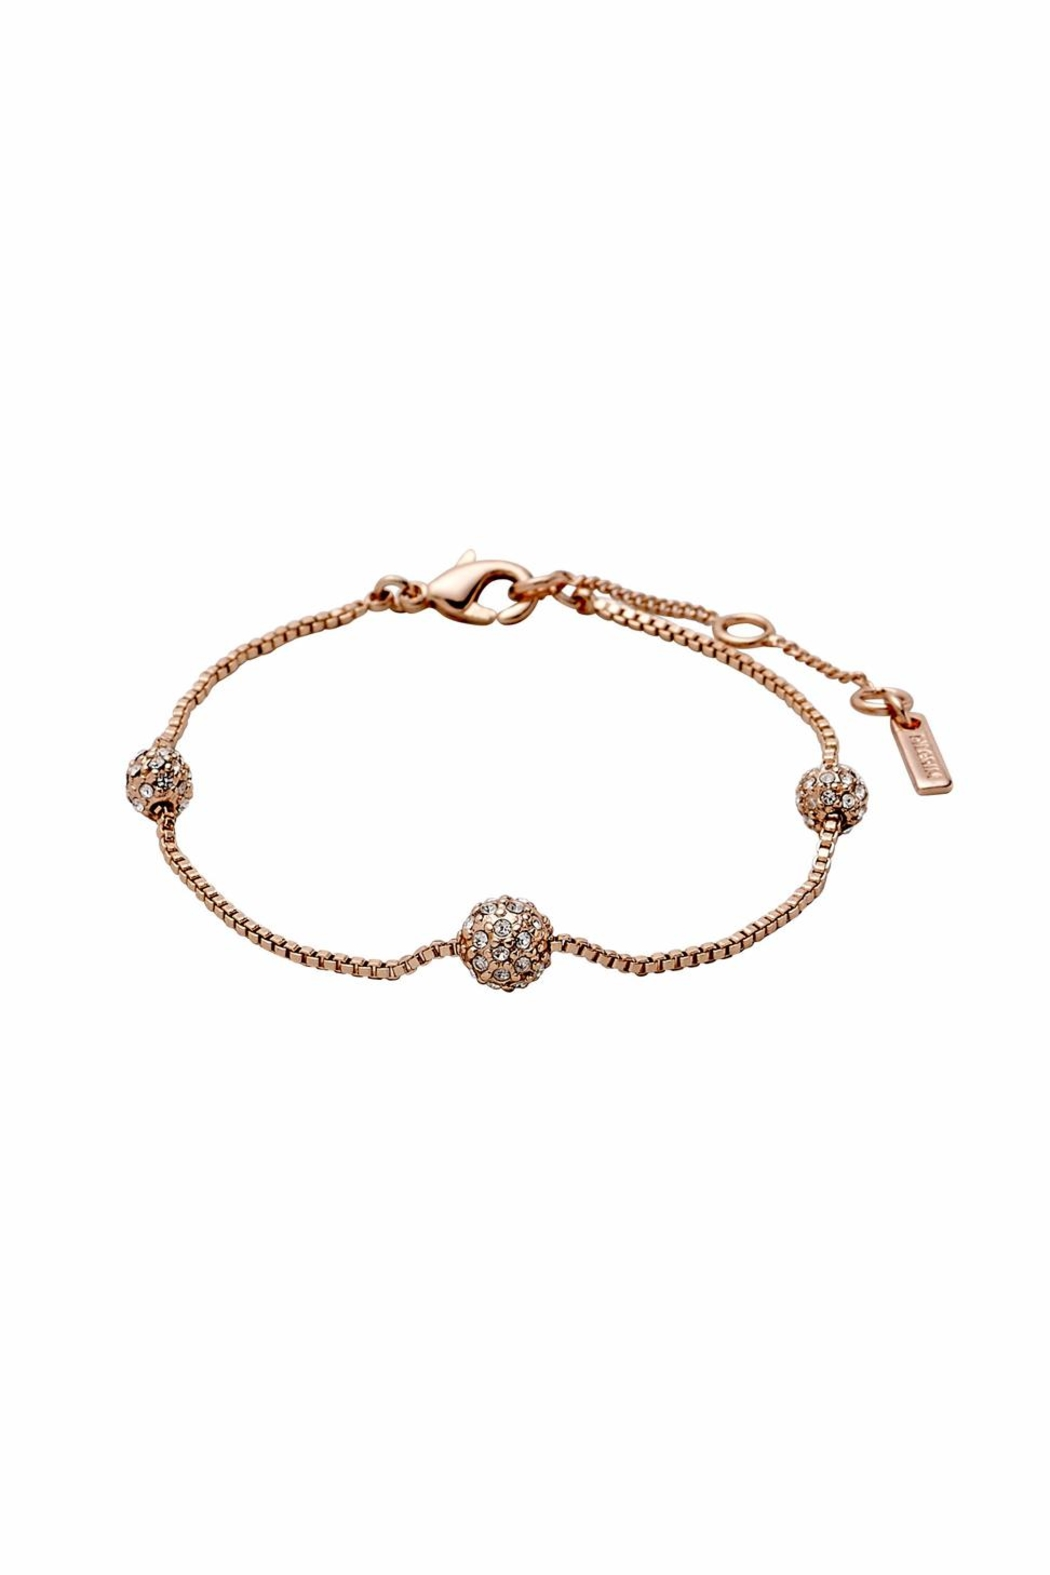 Pilgrim Rose Gold-Plated Bracelet - Main Image